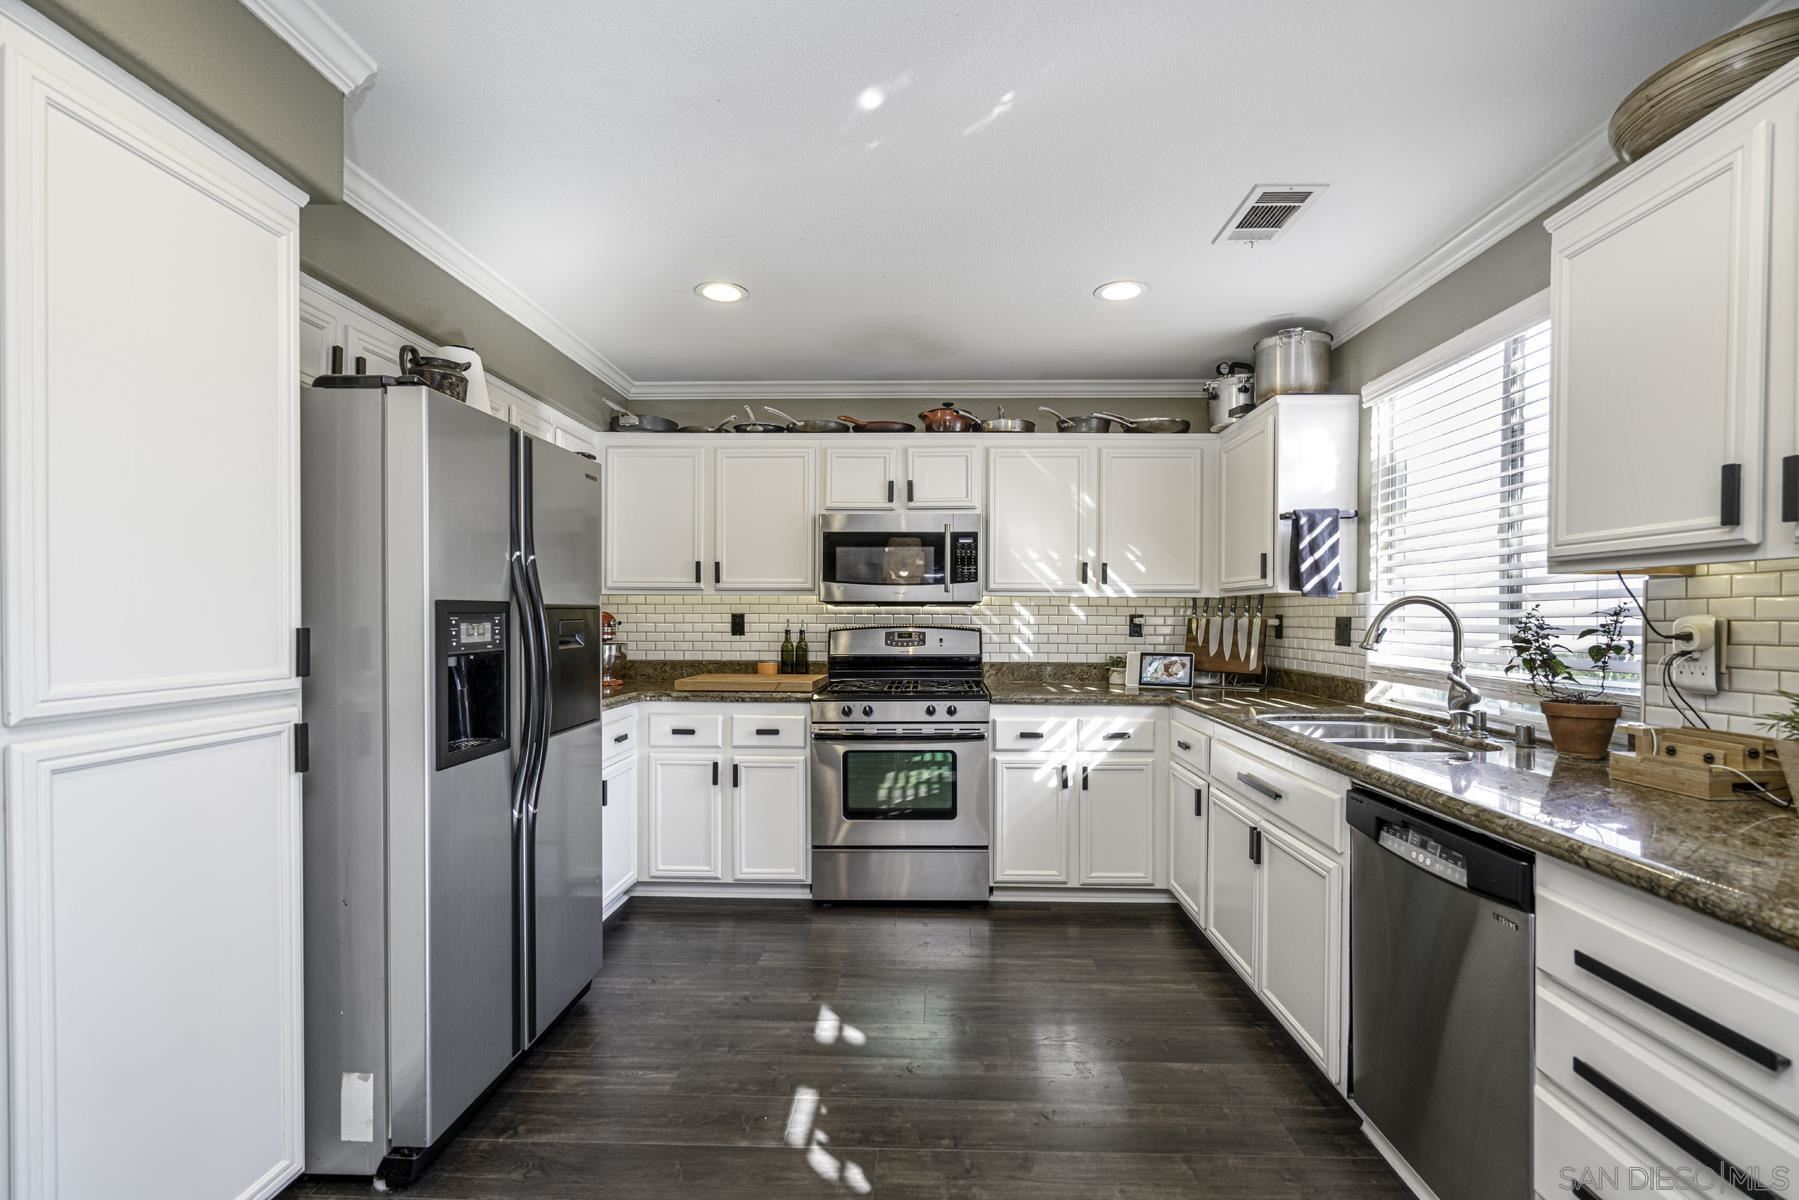 Photo of 13383 Goldentop Dr, Lakeside, CA 92040 (MLS # 210026391)